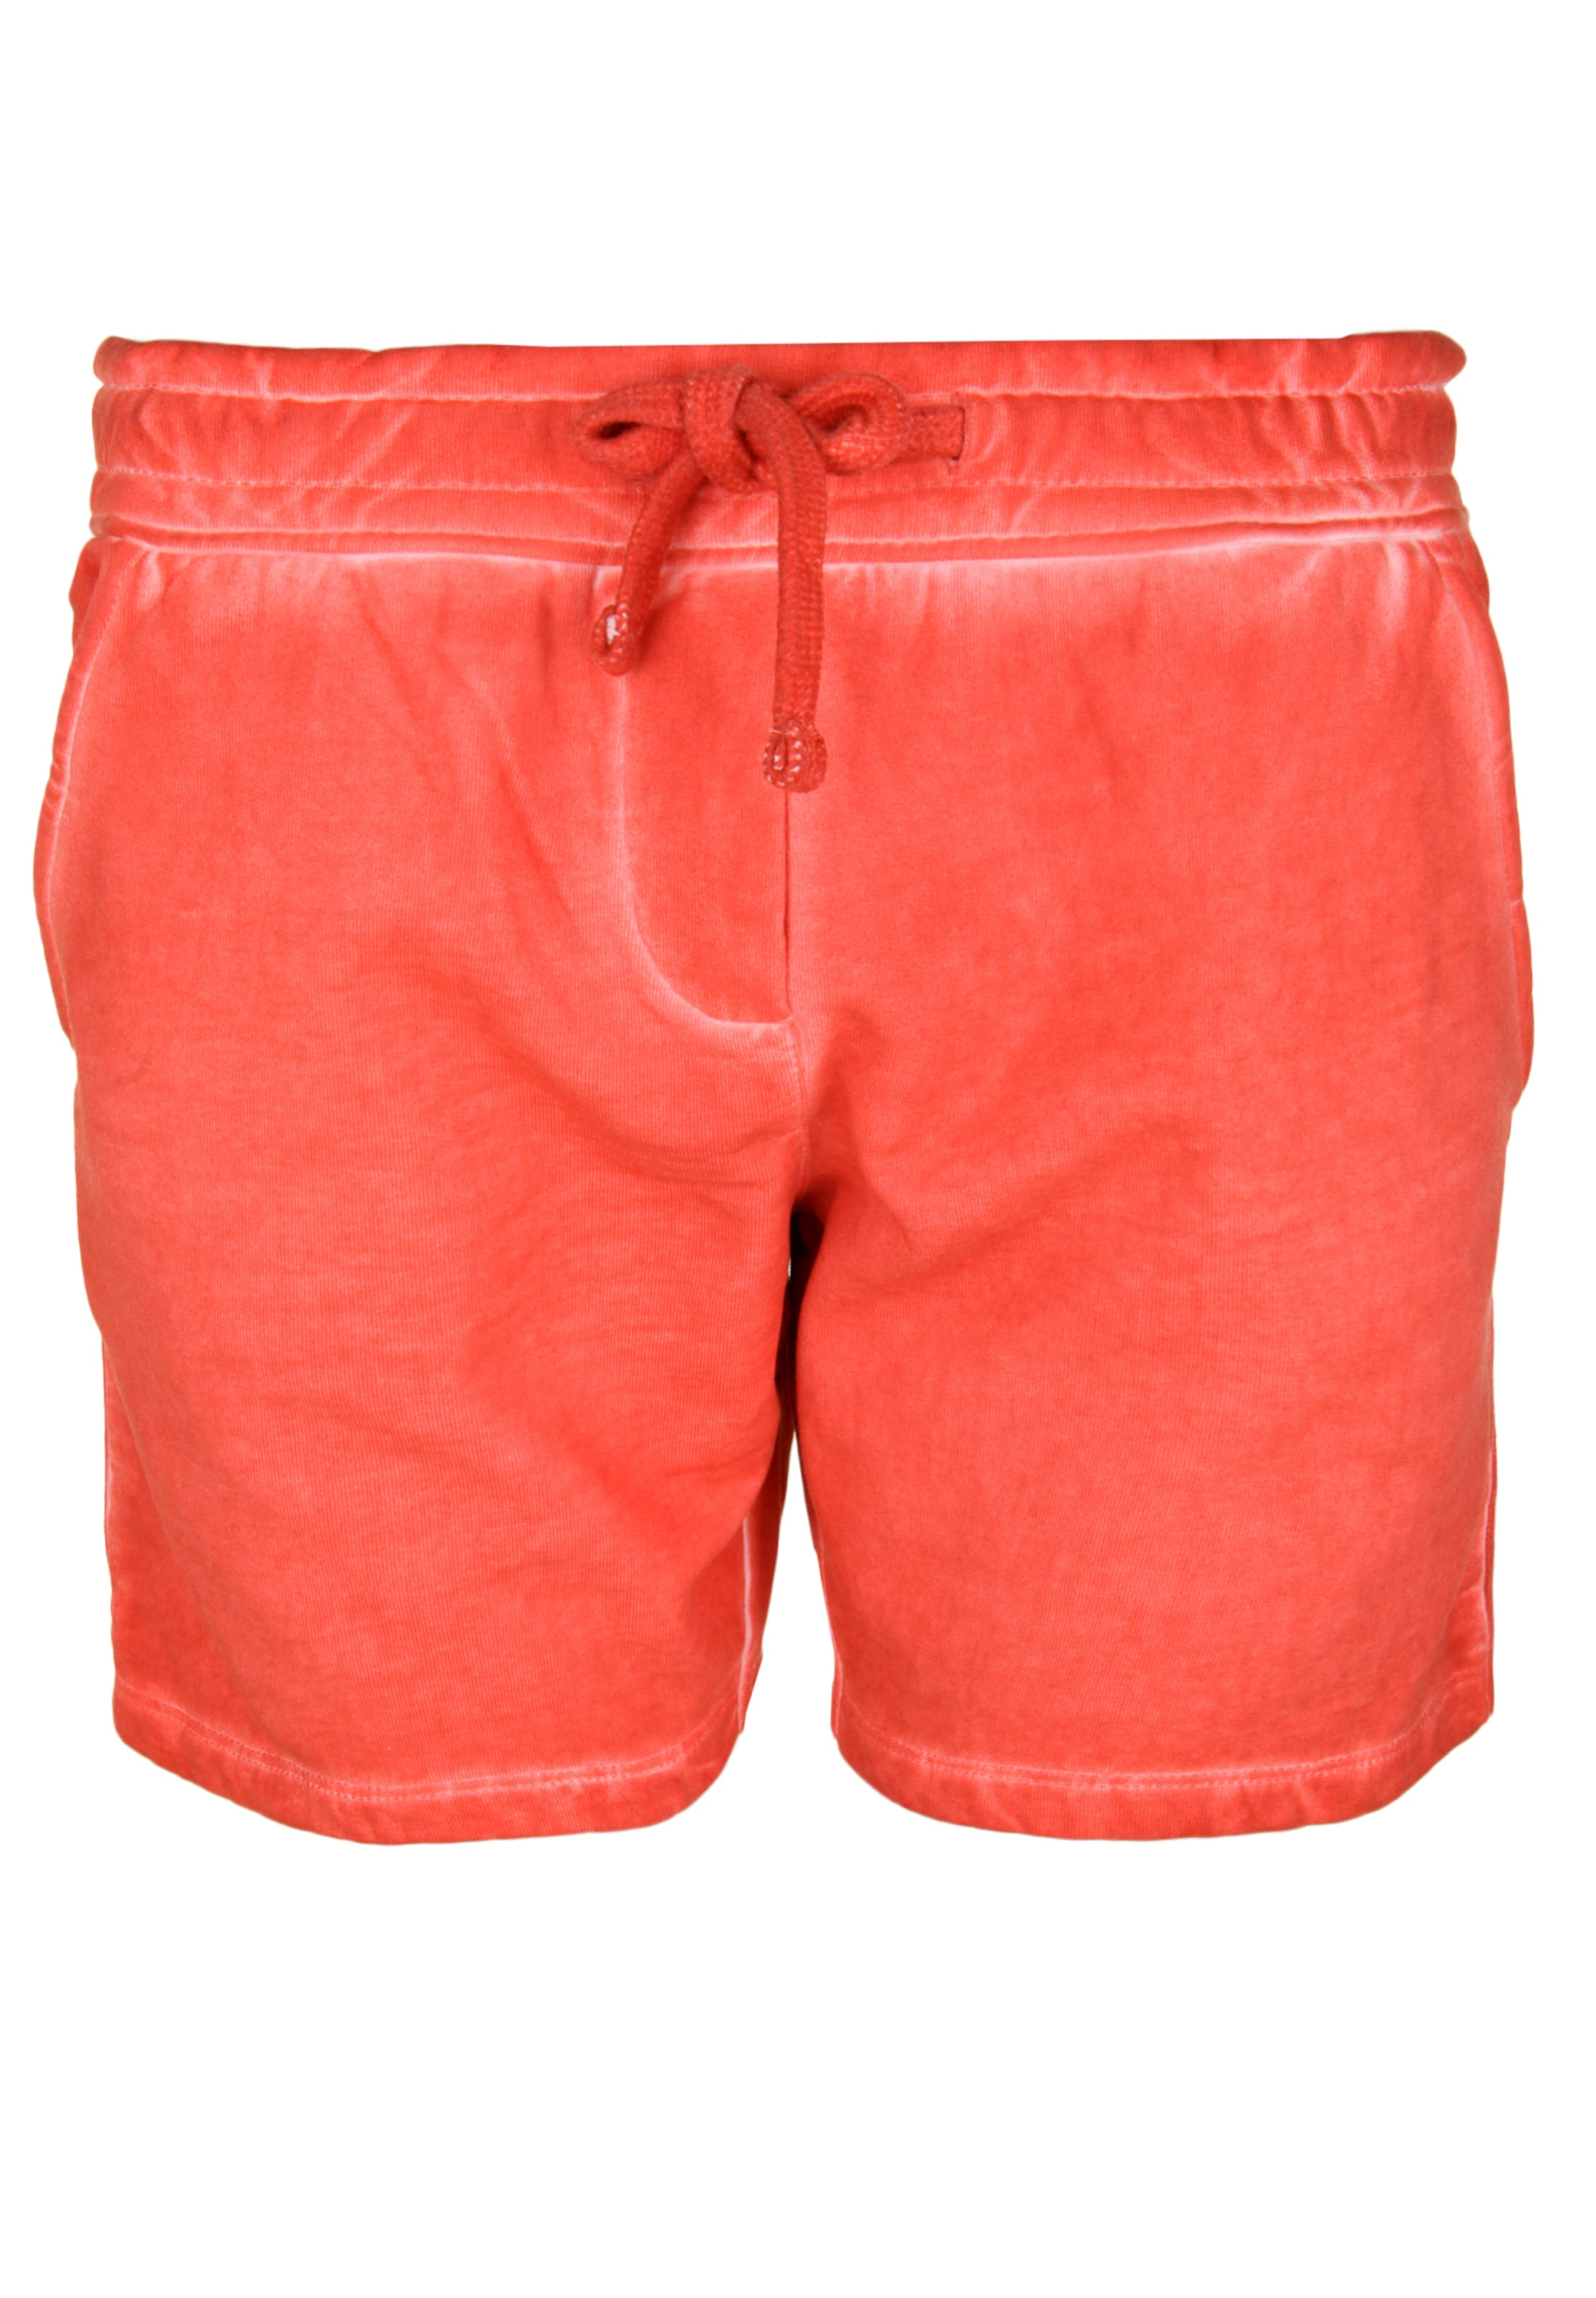 Koralle 'andrea' Shirts In For Shorts Life Sweat MzpUVqSG